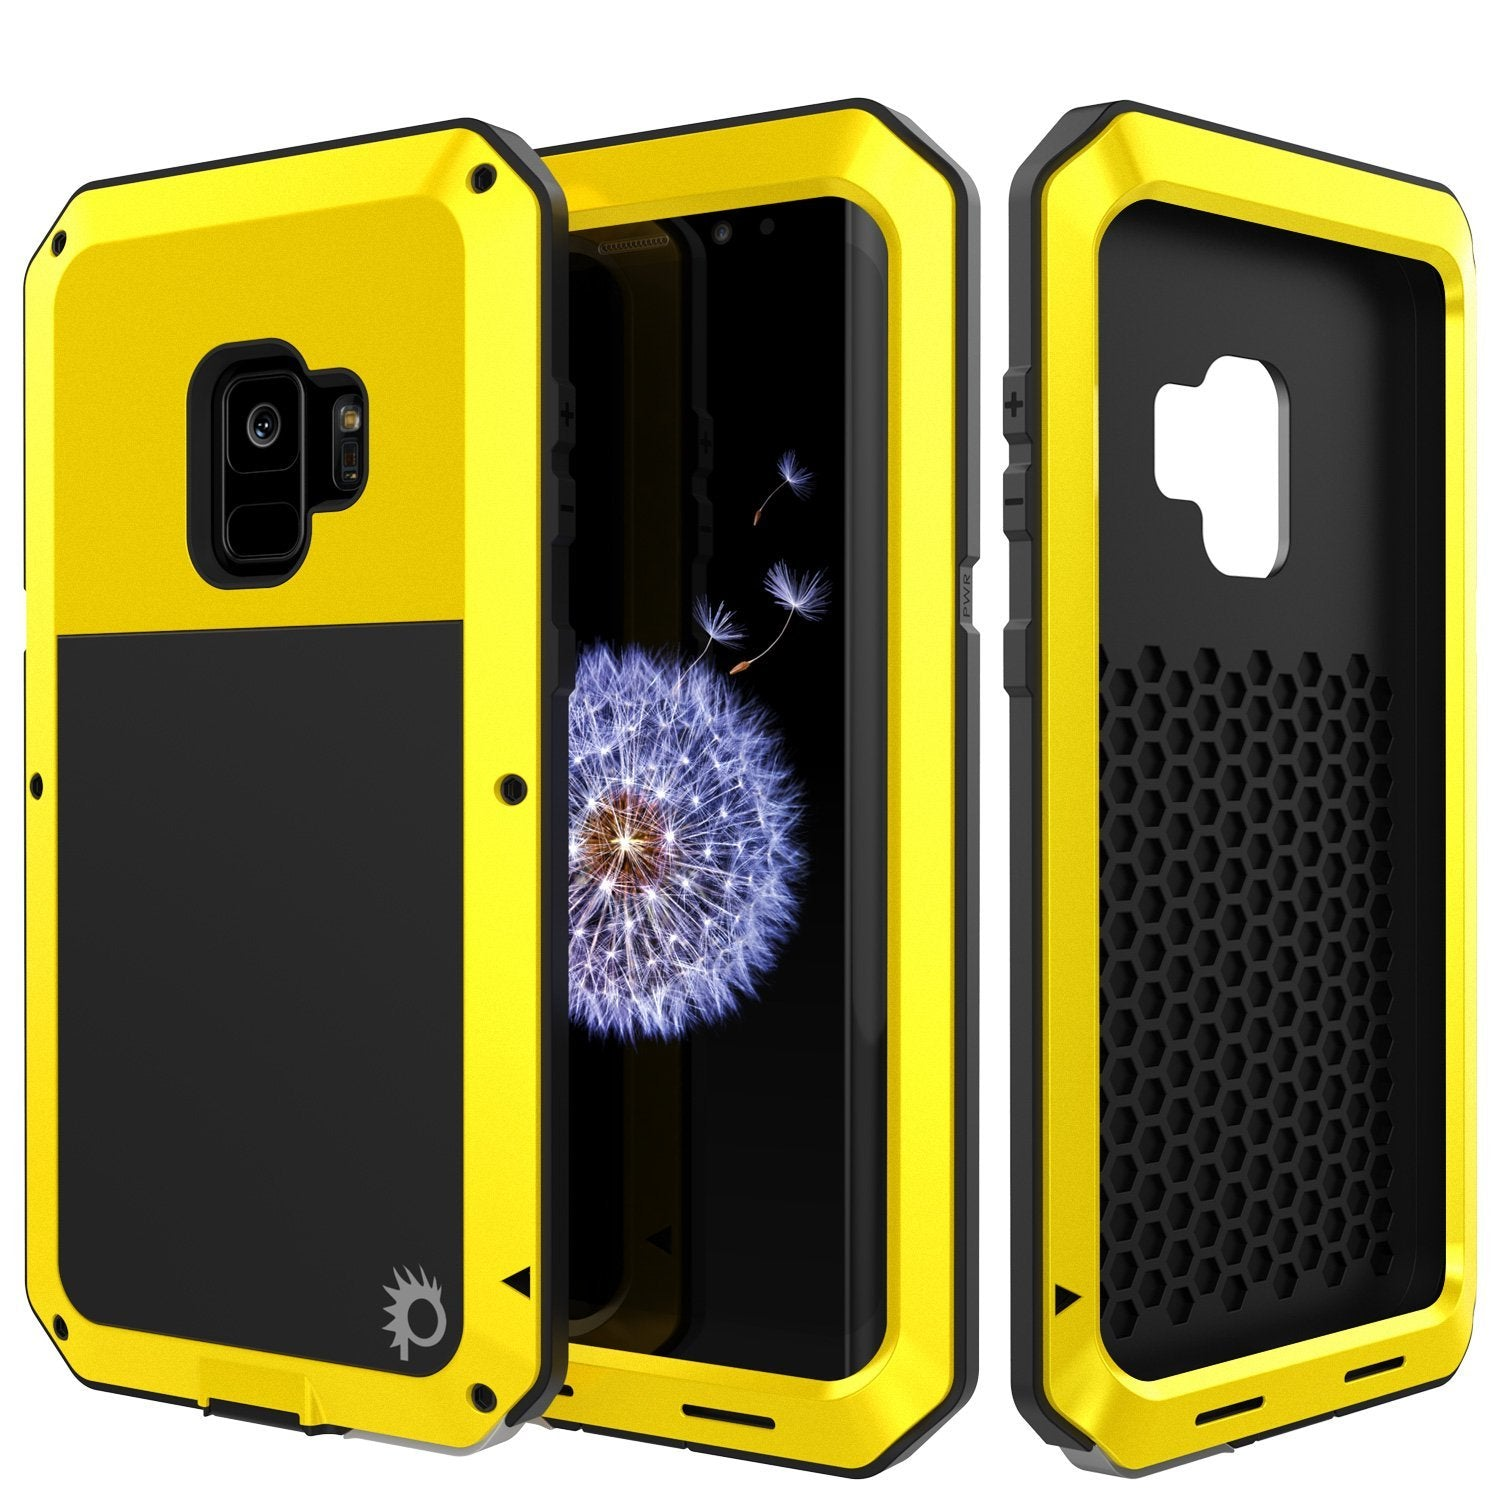 Galaxy S10e Metal Case, Heavy Duty Military Grade Rugged Armor Cover [Neon]